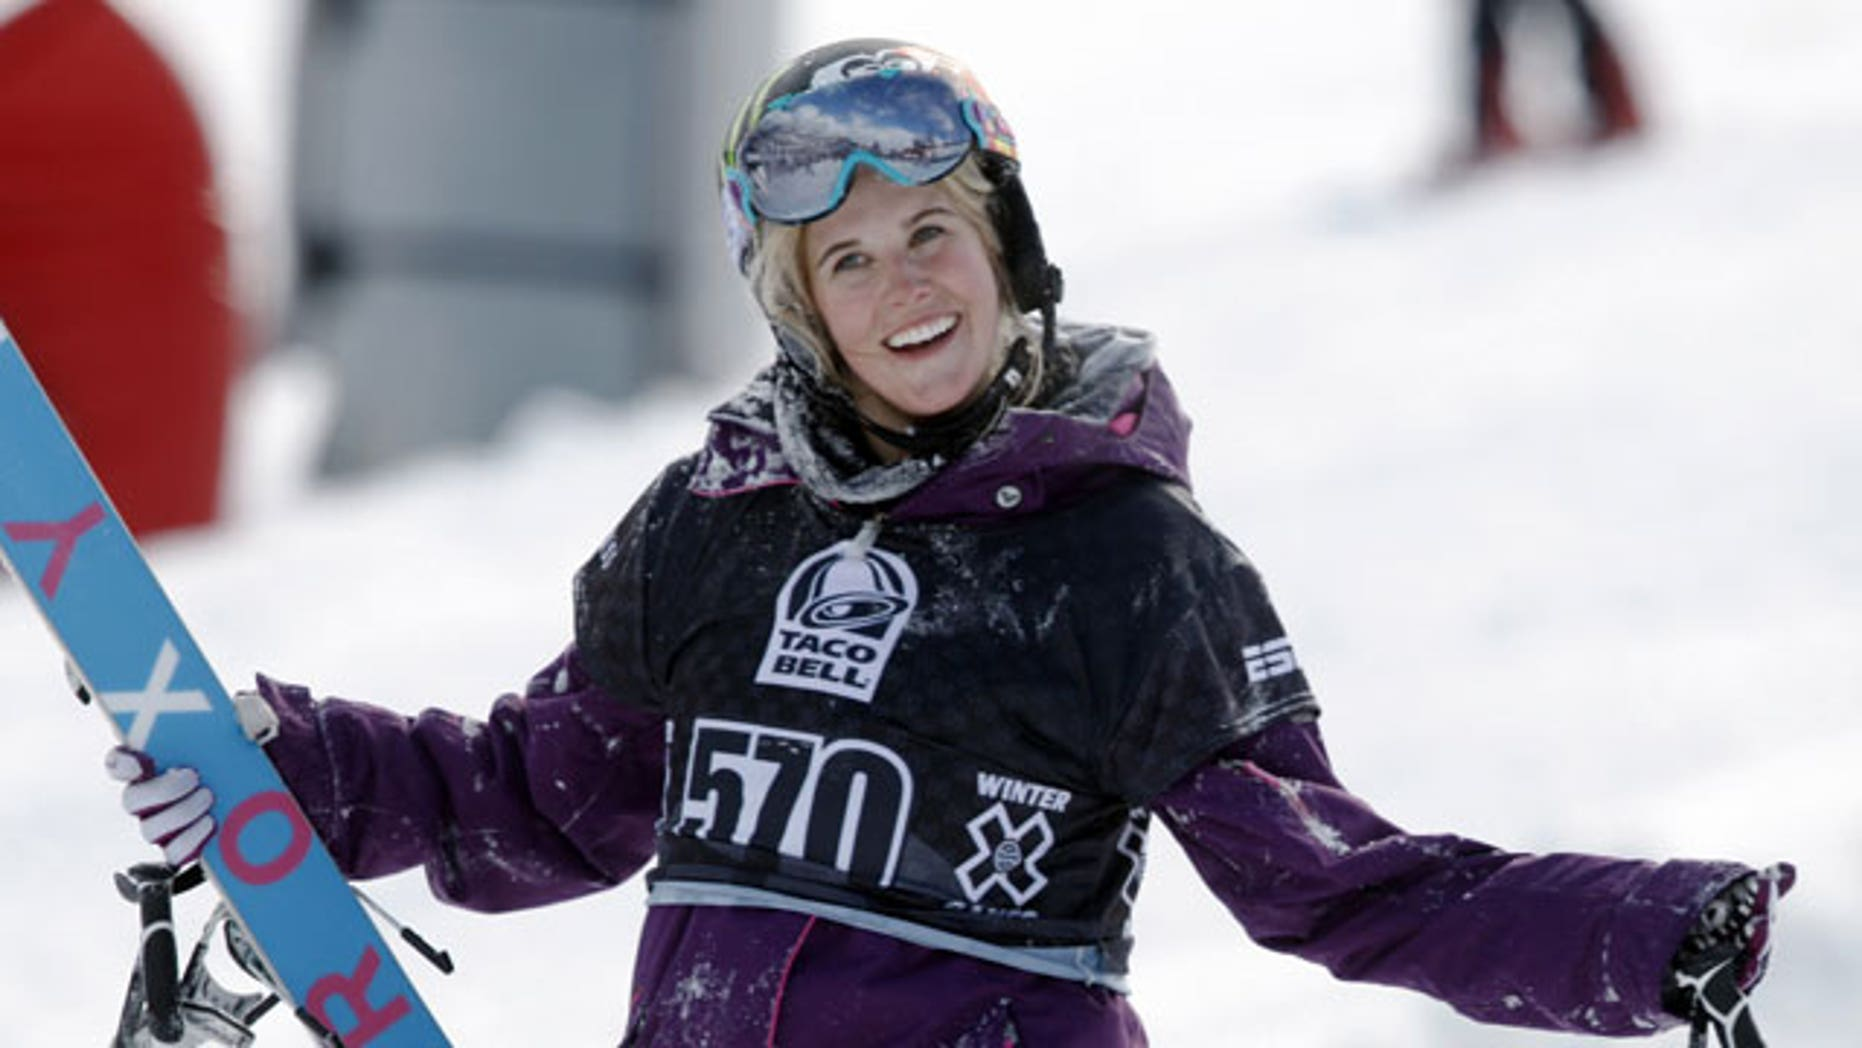 In a Jan. 28, 2010, file photo, Sarah Burke, of Canada, reacts after failing to place in the top-three finishers in the slopestyle skiing women's final at the Winter X Games at Buttermilk Mountain outside Aspen, Colo.